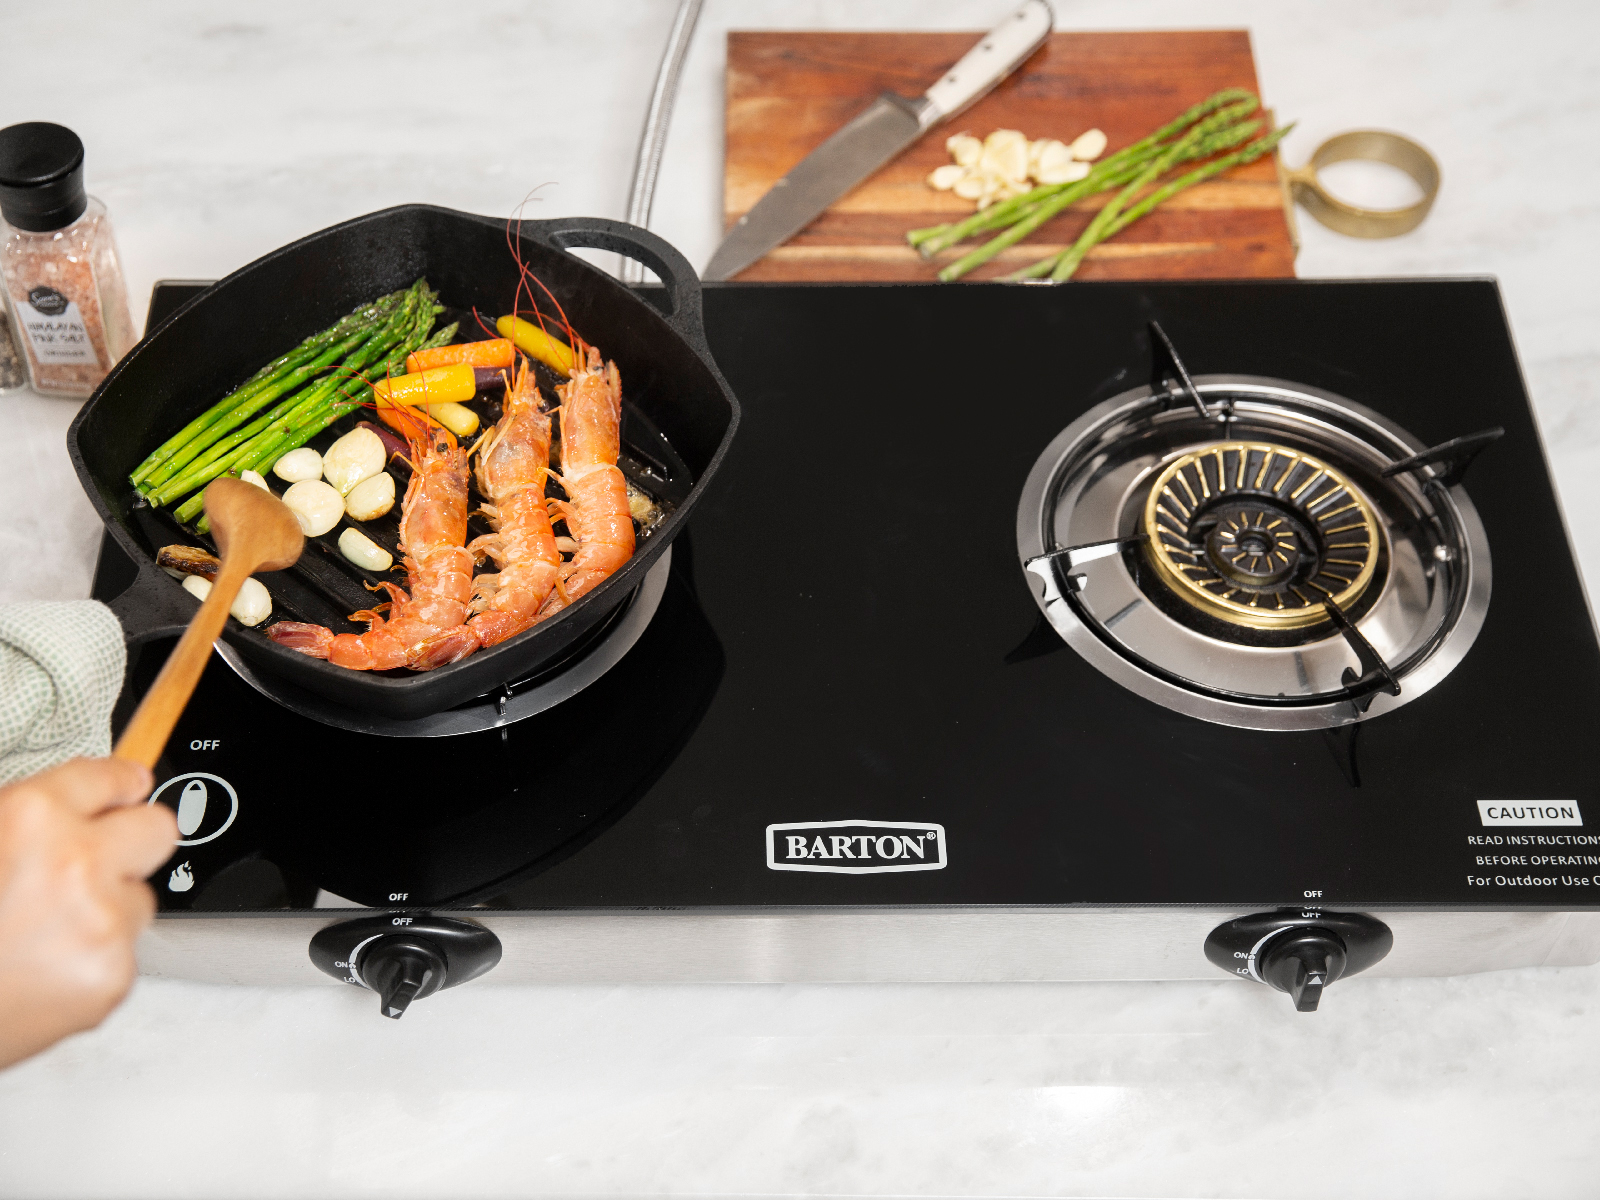 Rv Propane Stove >> Details About Propane Gas Range Stove 2 Burner Rv Camping Tempere Glass Cook Top Auto Ignition